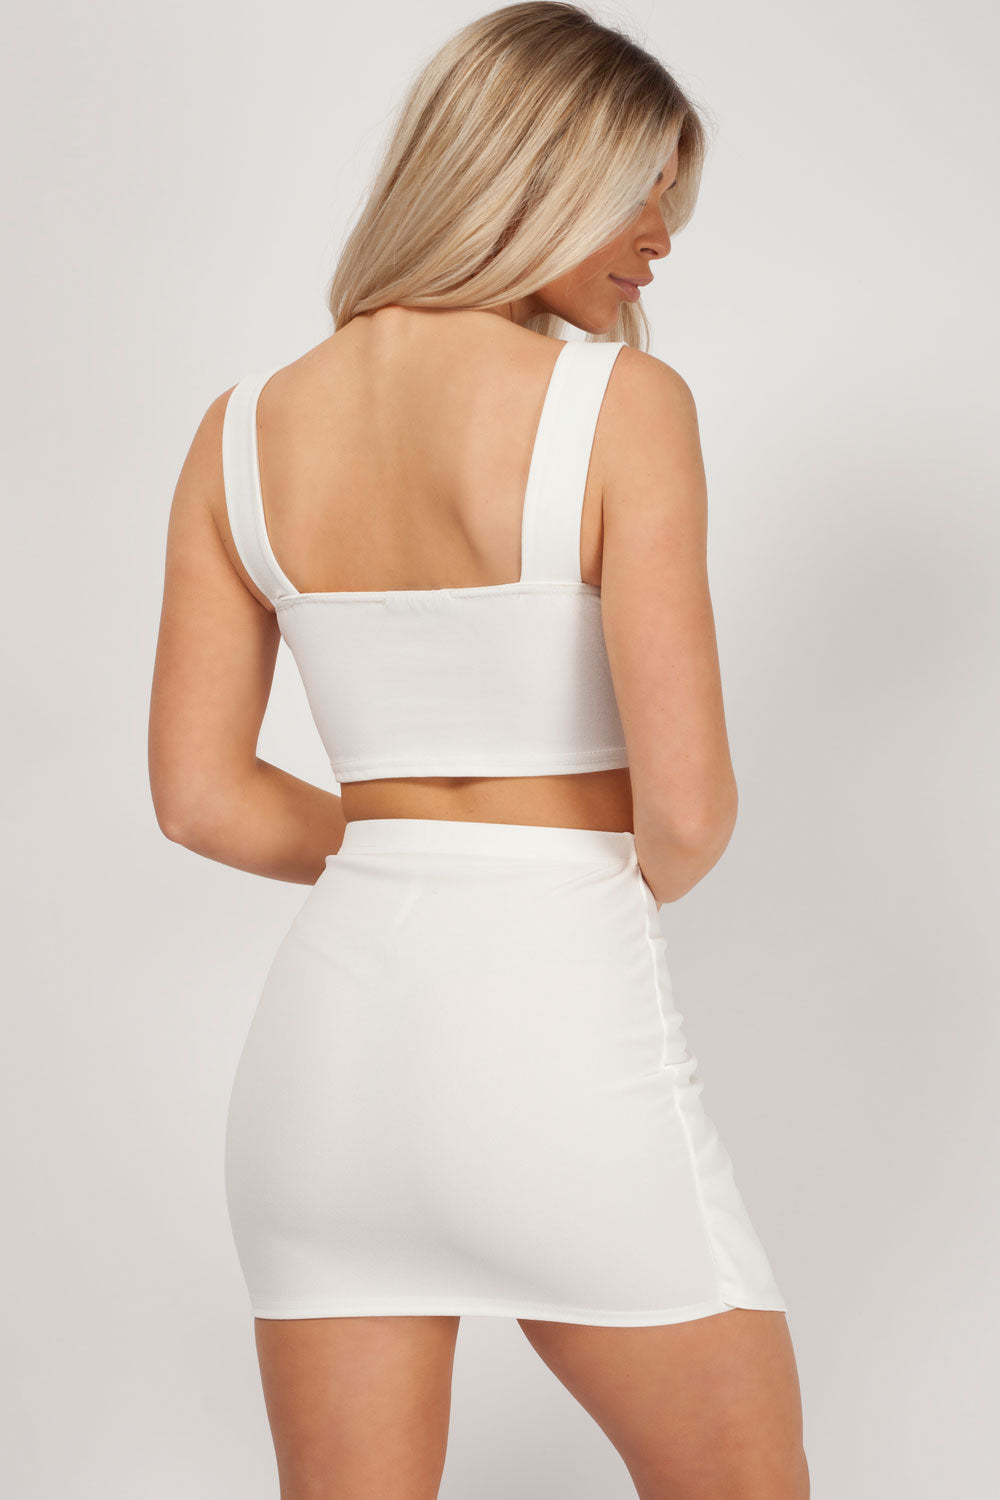 white two piece skirt and top